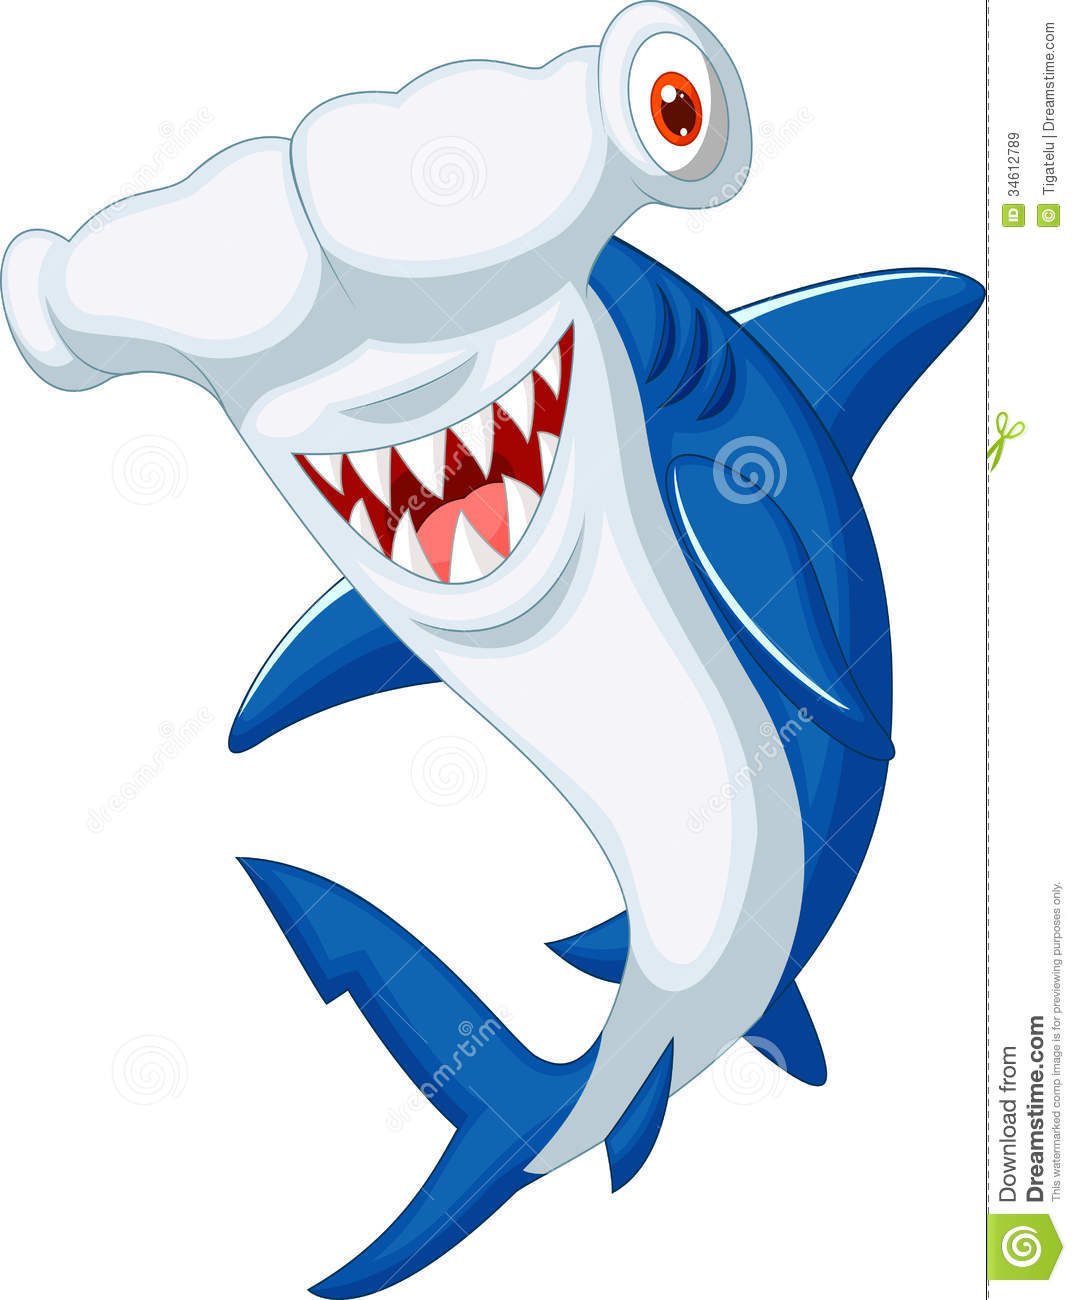 Cute Hammerhead Shark Cartoon Royalty Free Stock Images - Image ...